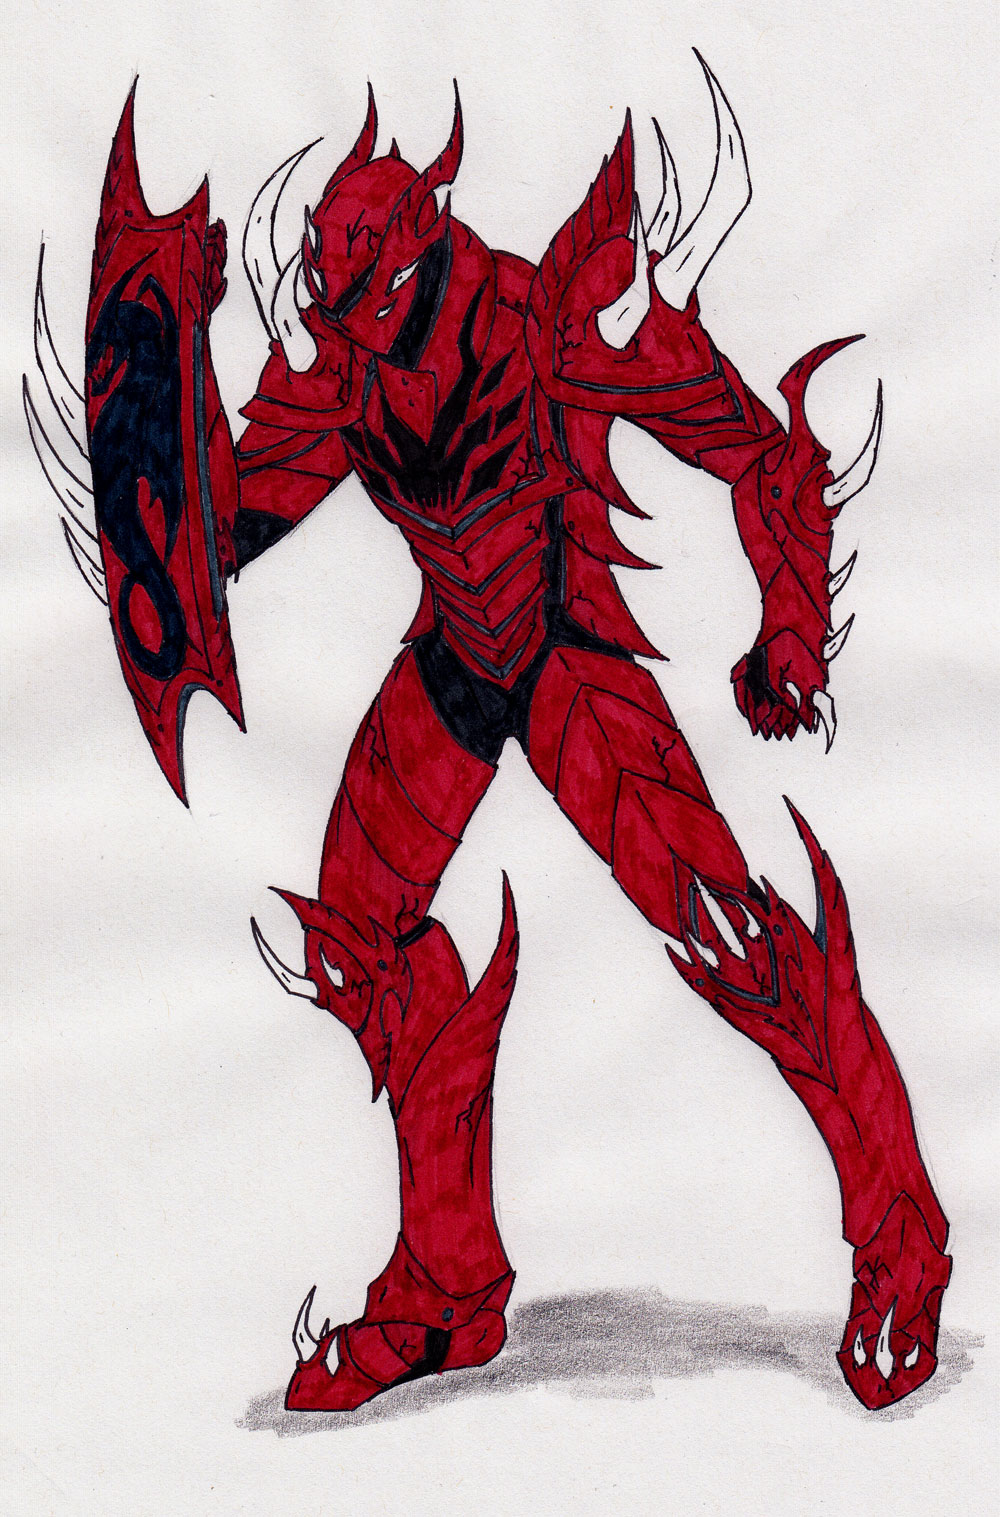 Drawn amour draconic Armor permutation Nimrohd Spiked by